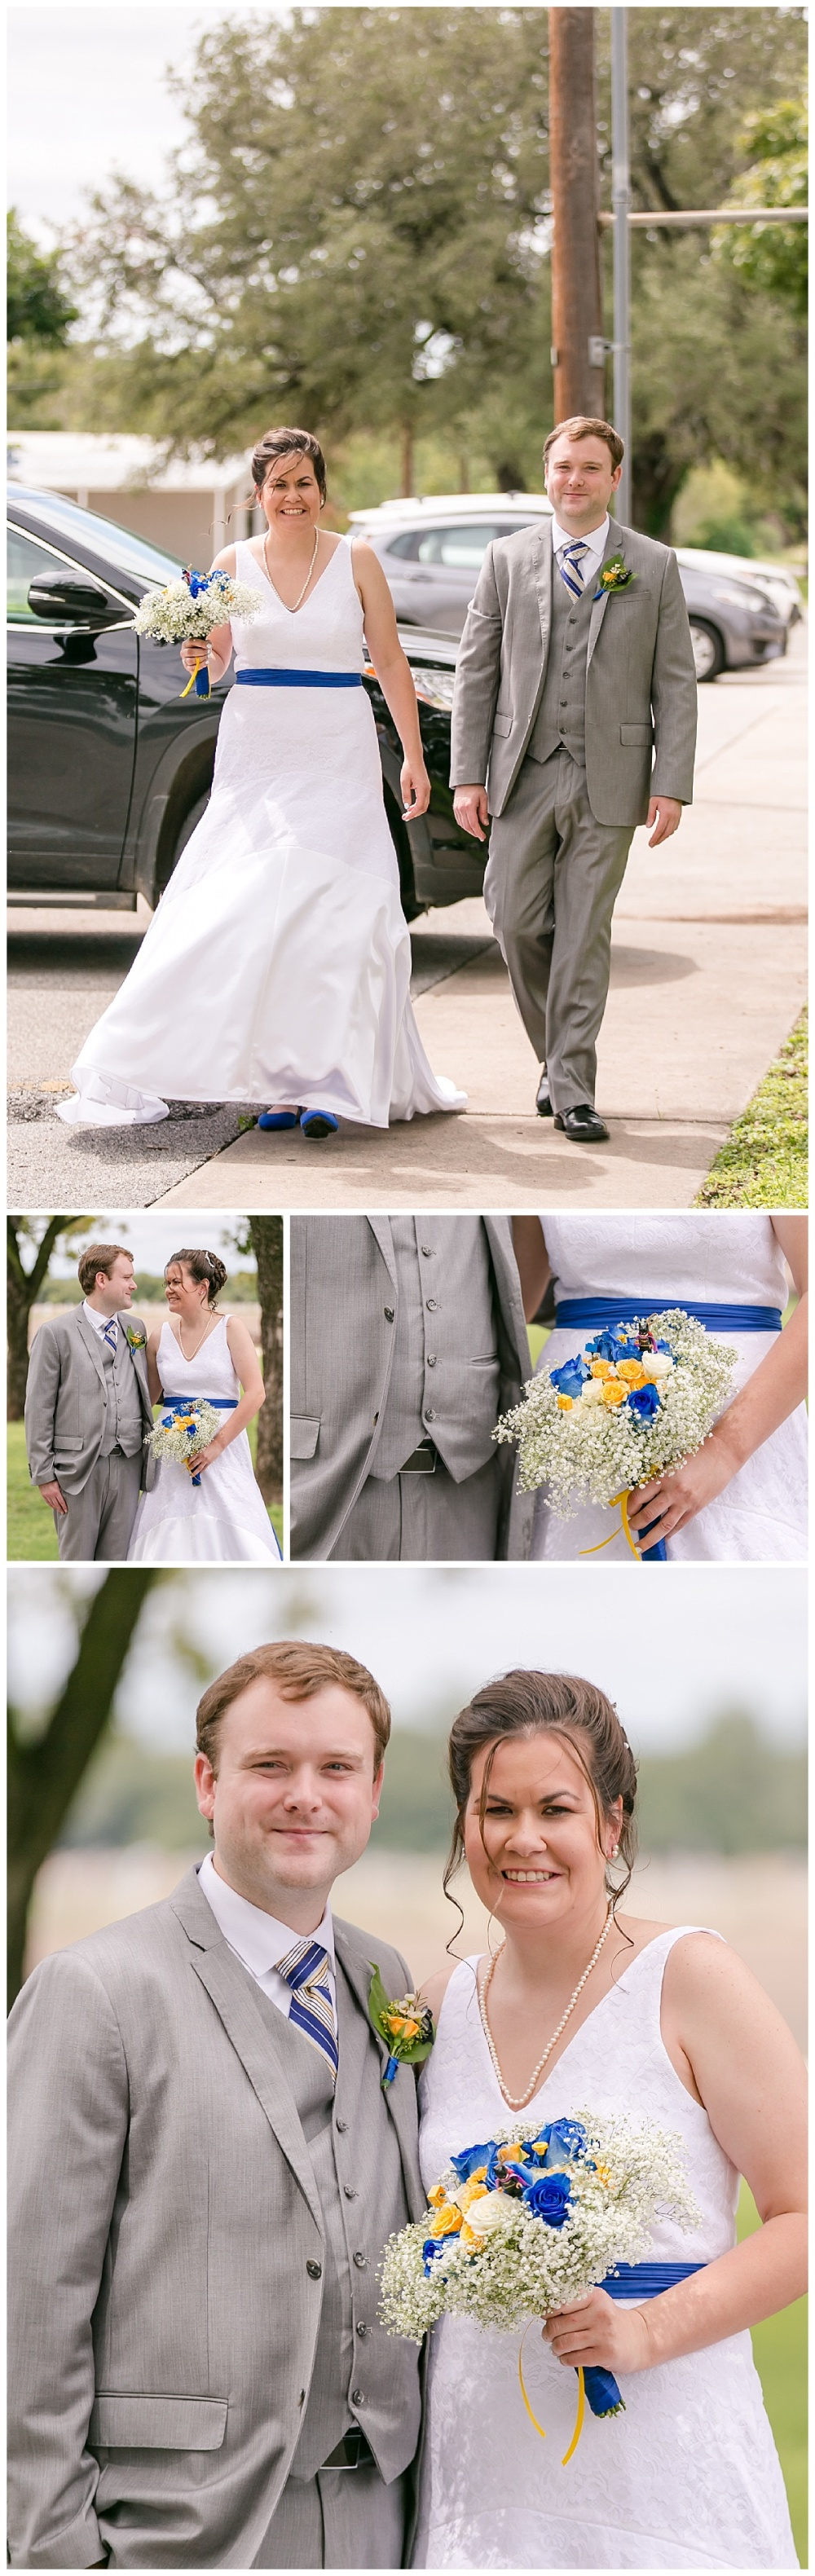 Texas-Wedding-Photographer-La-Coste-Our-Lady-Of-Grace-Church-Bride-Groom-Lego-Theme-Carly-Barton-Photography_0025.jpg